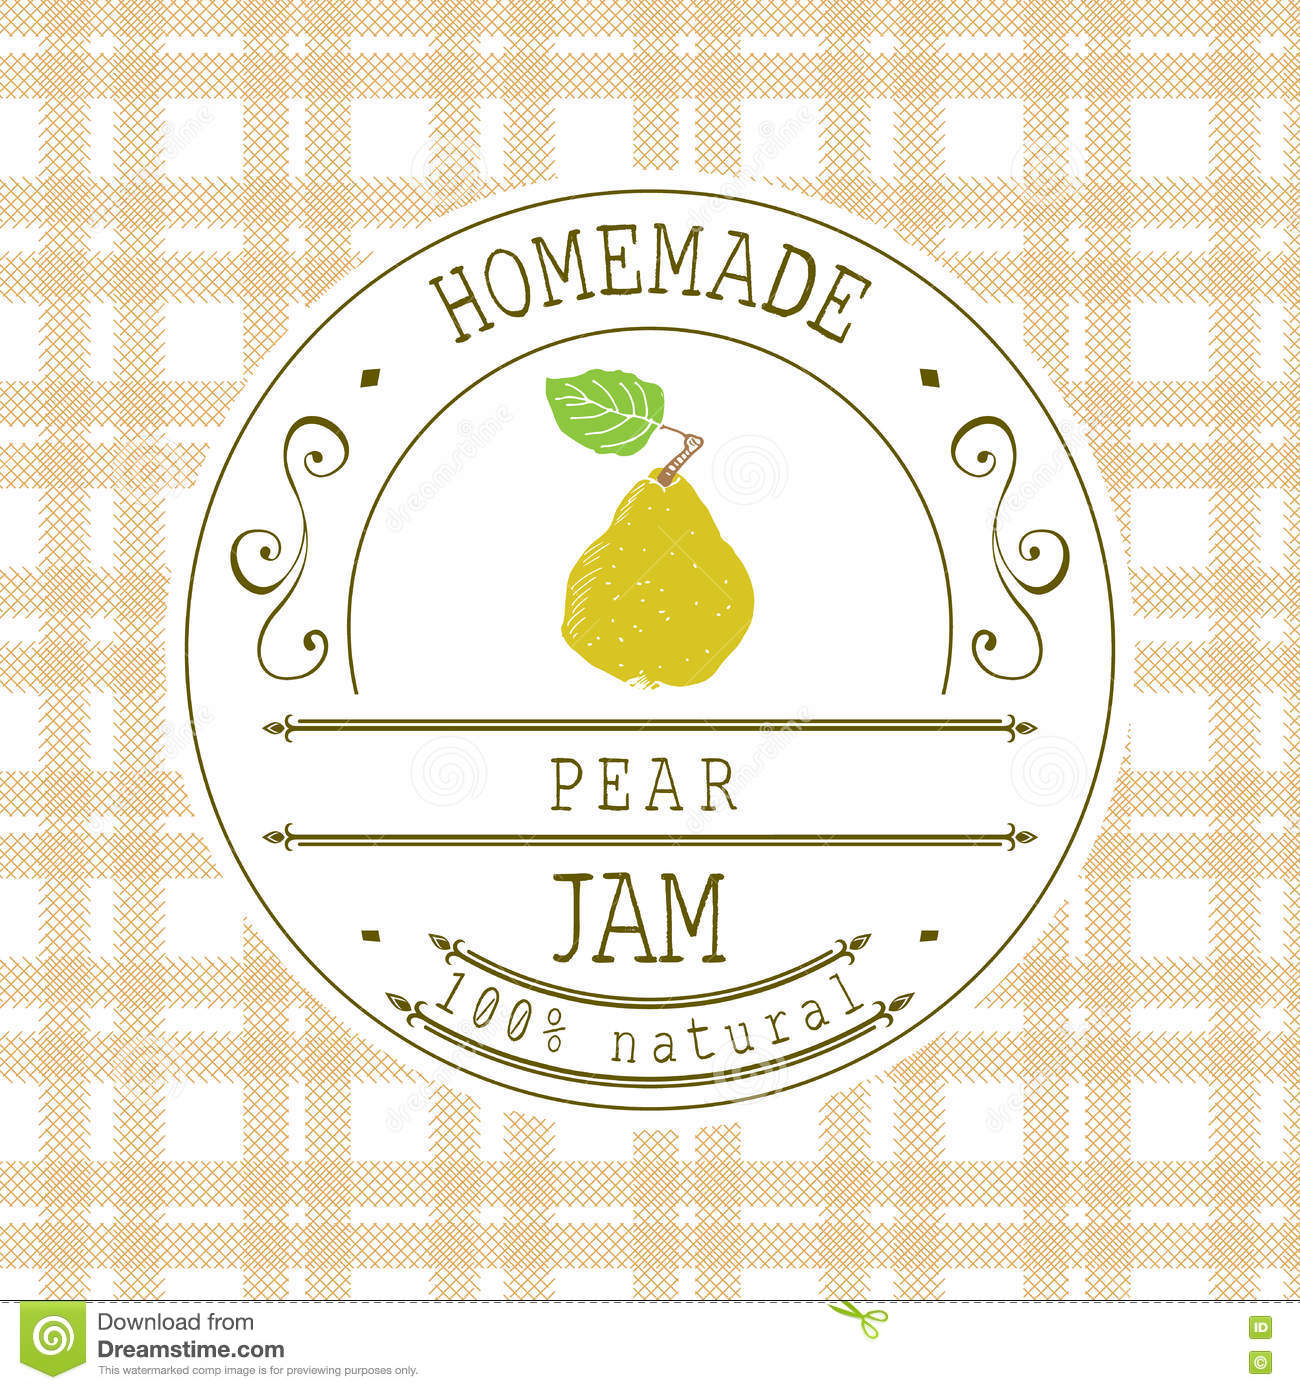 jam label design template for pear dessert product with hand drawn